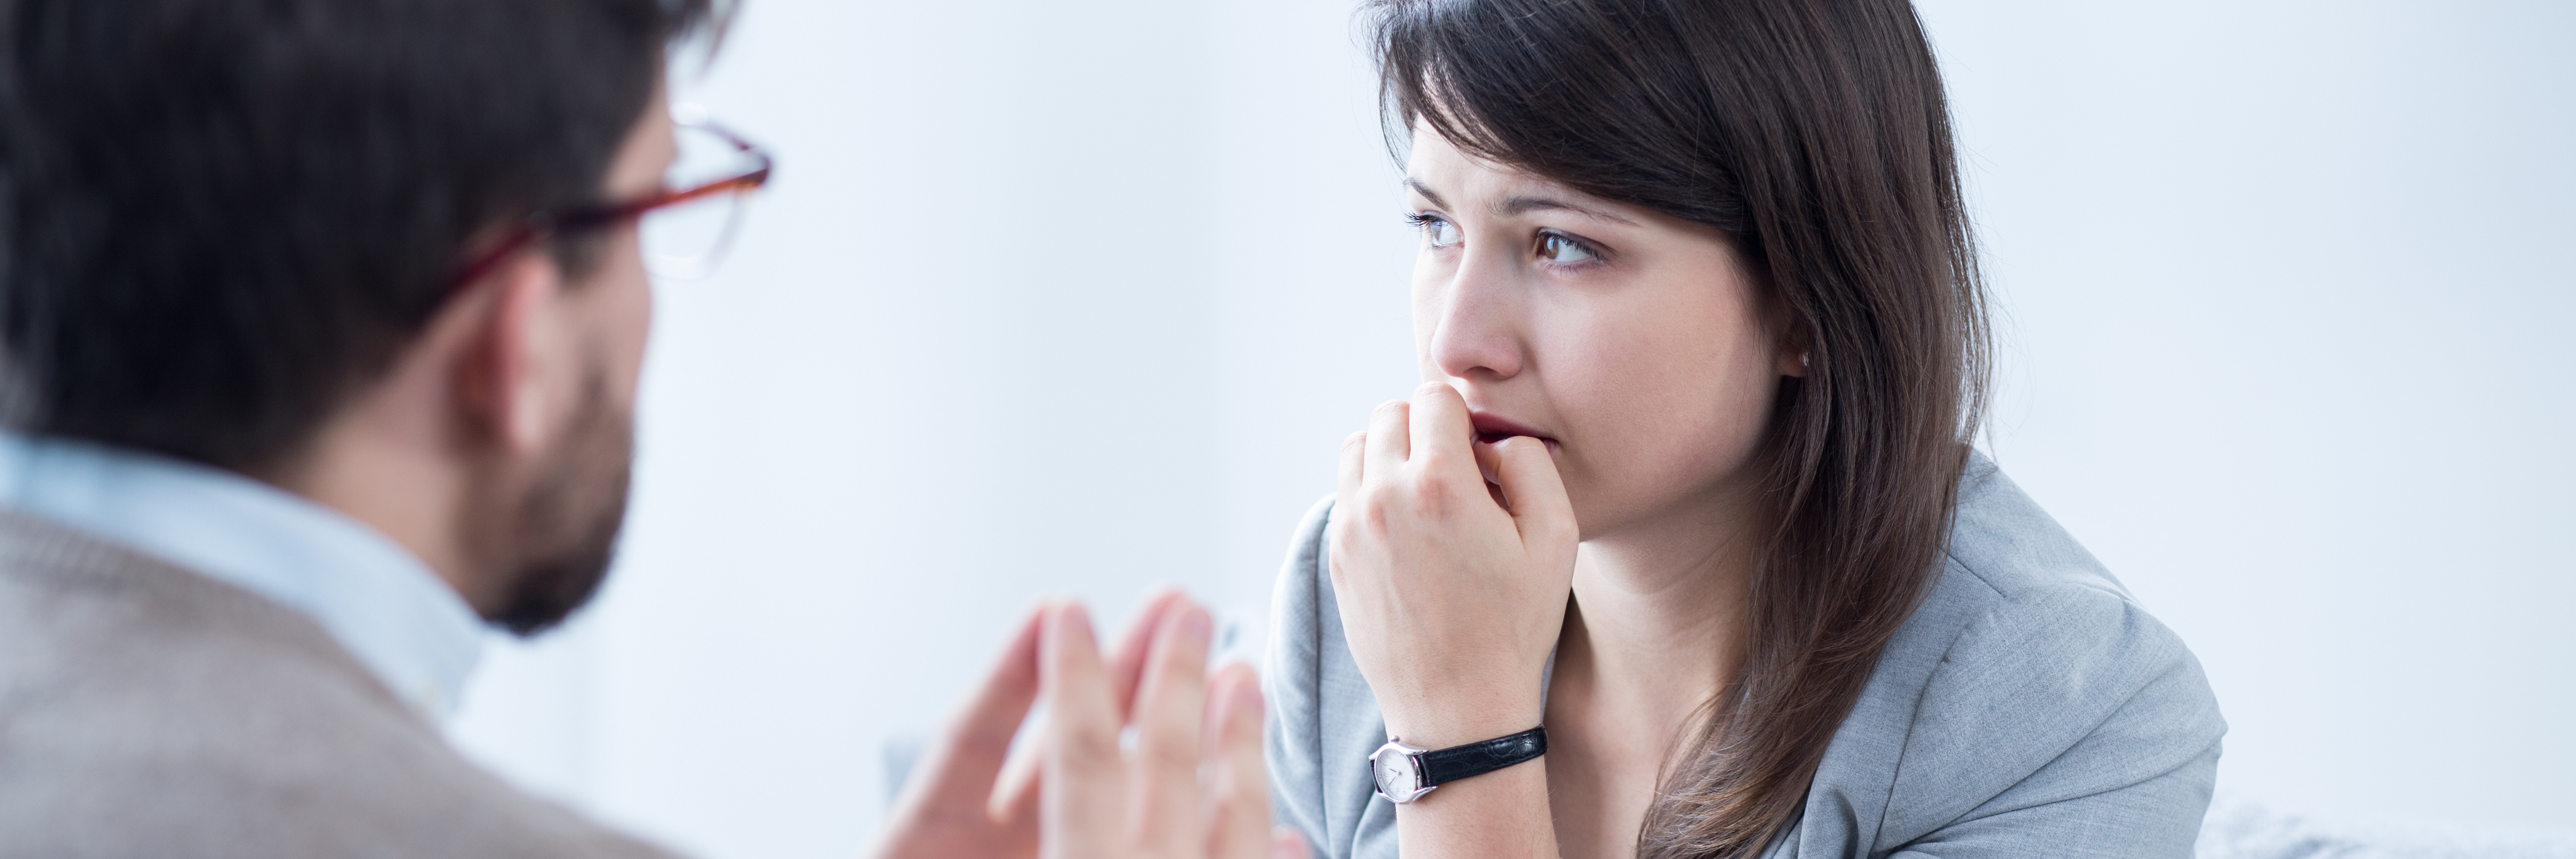 woman biting her nails during appointment with doctor or therapist